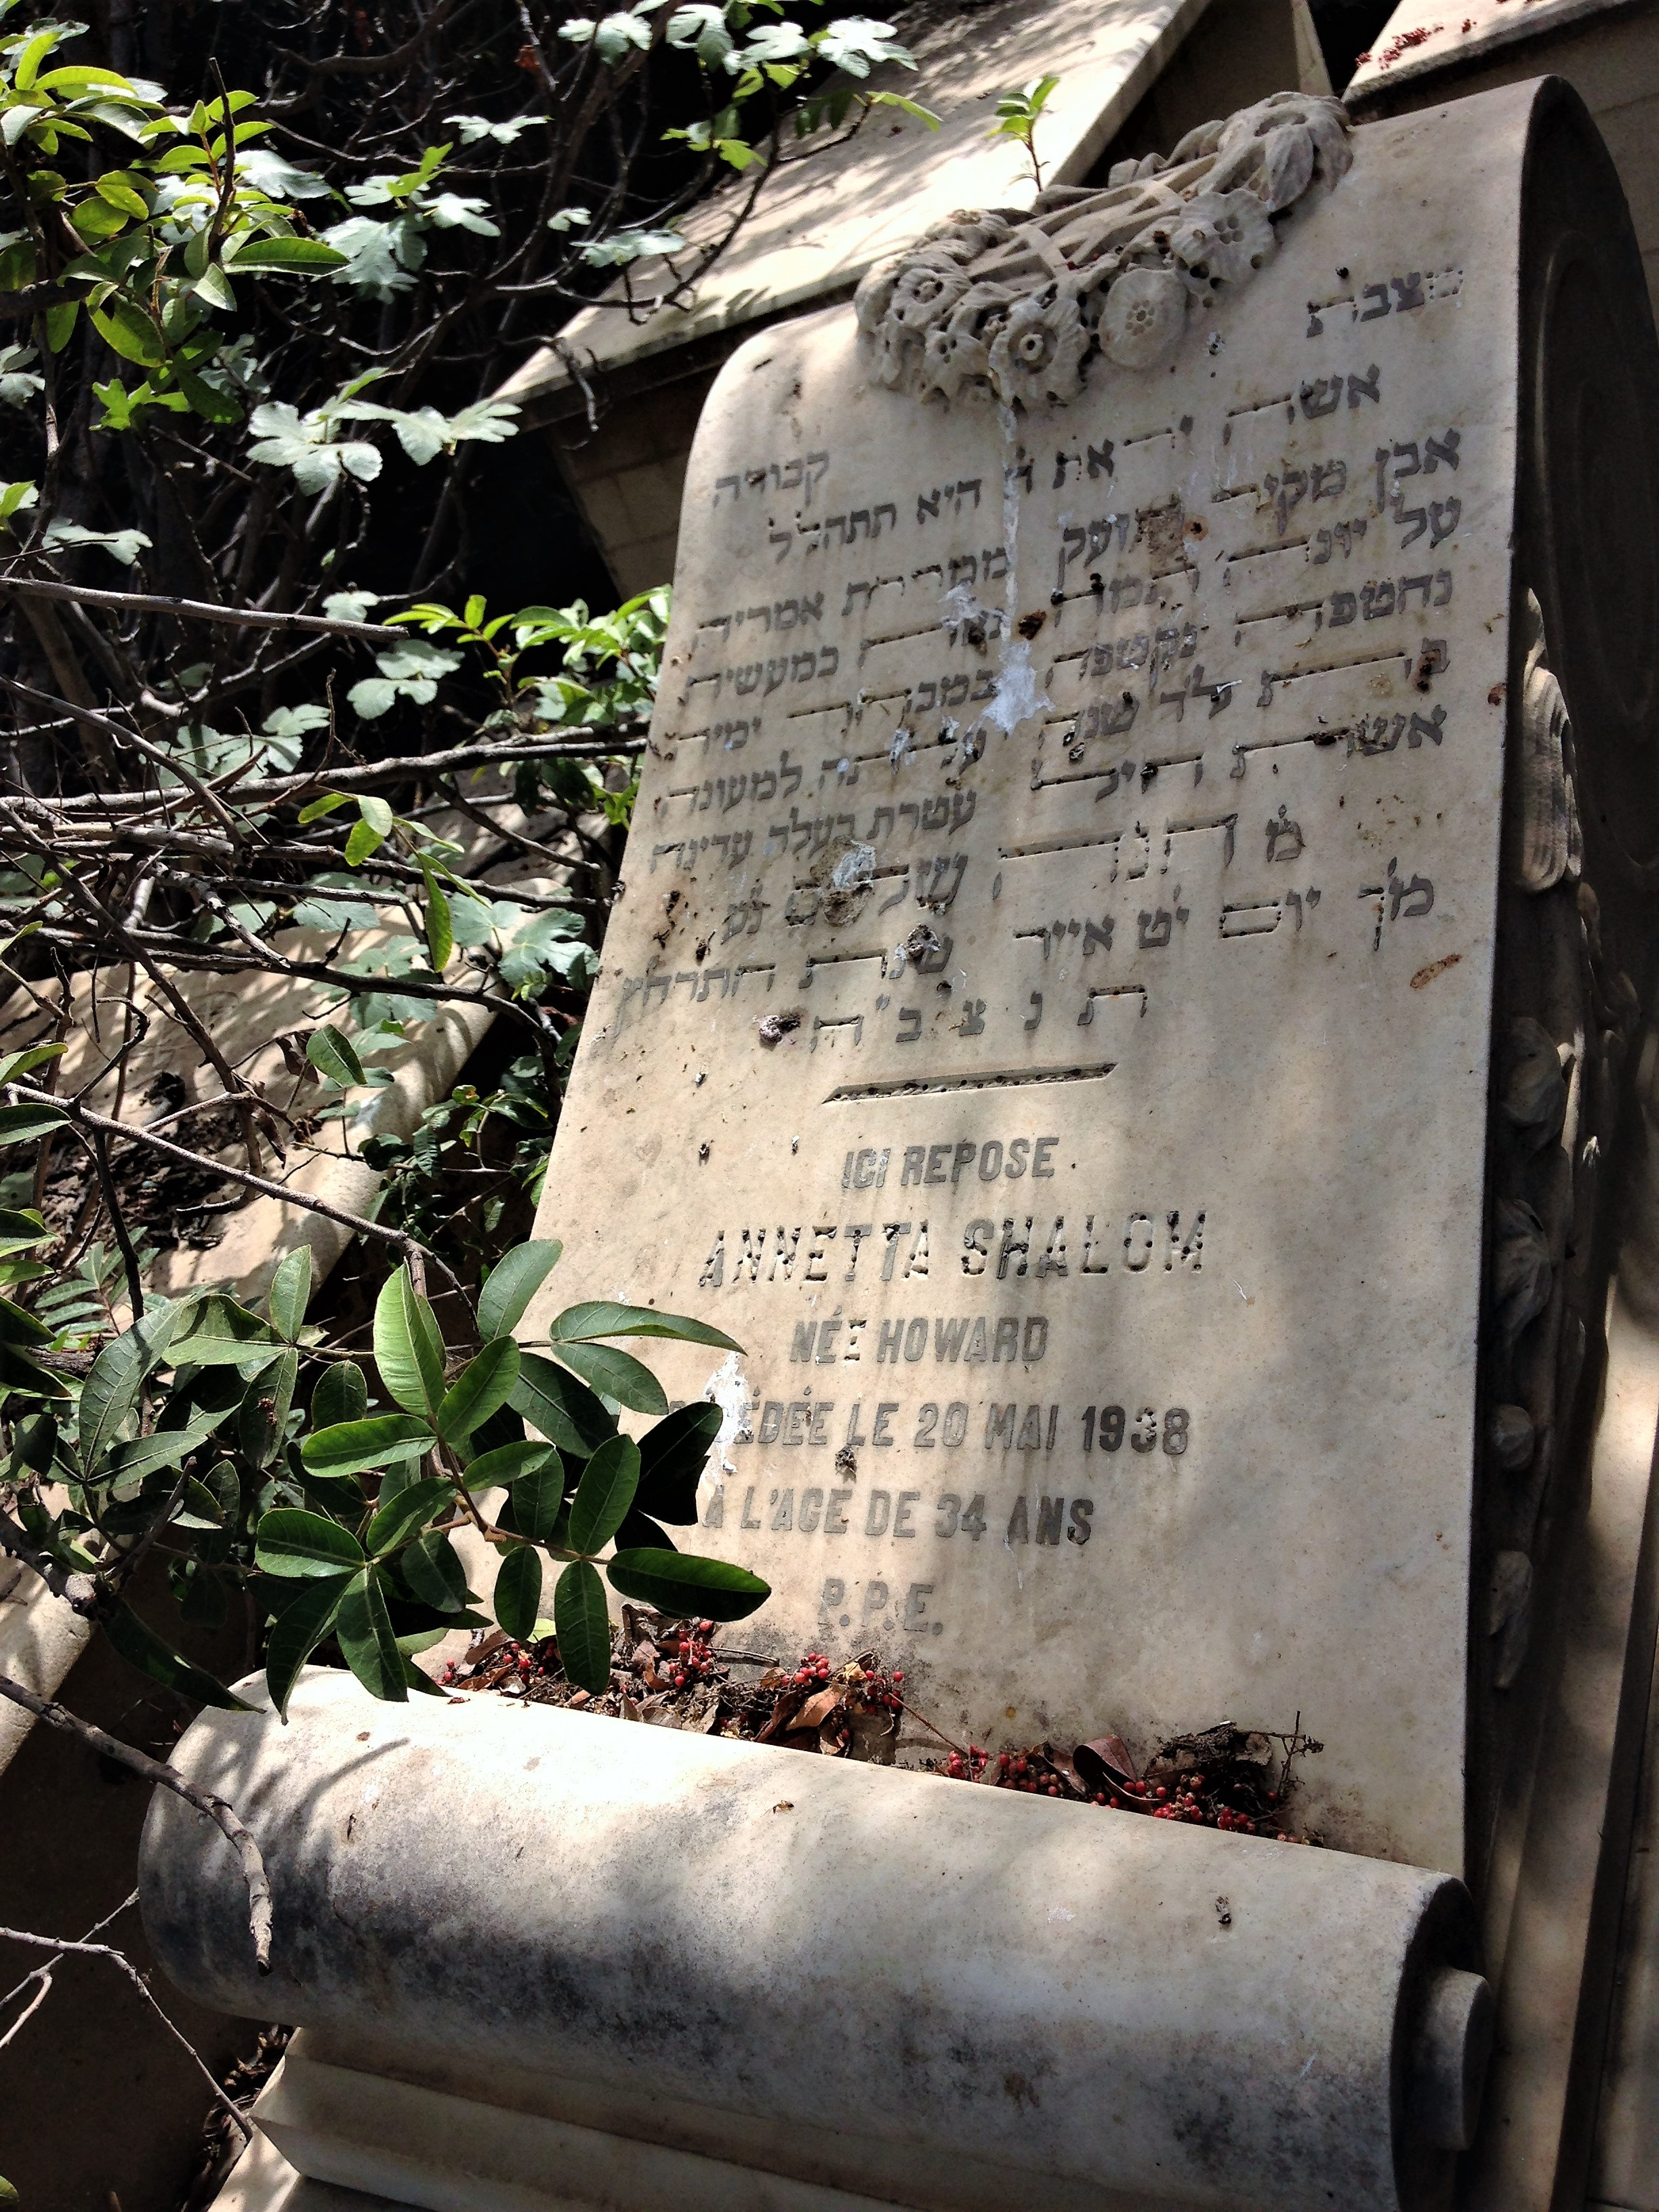 Tombstone of Annetta Shalom in Alexandria's Jewish cemetery.